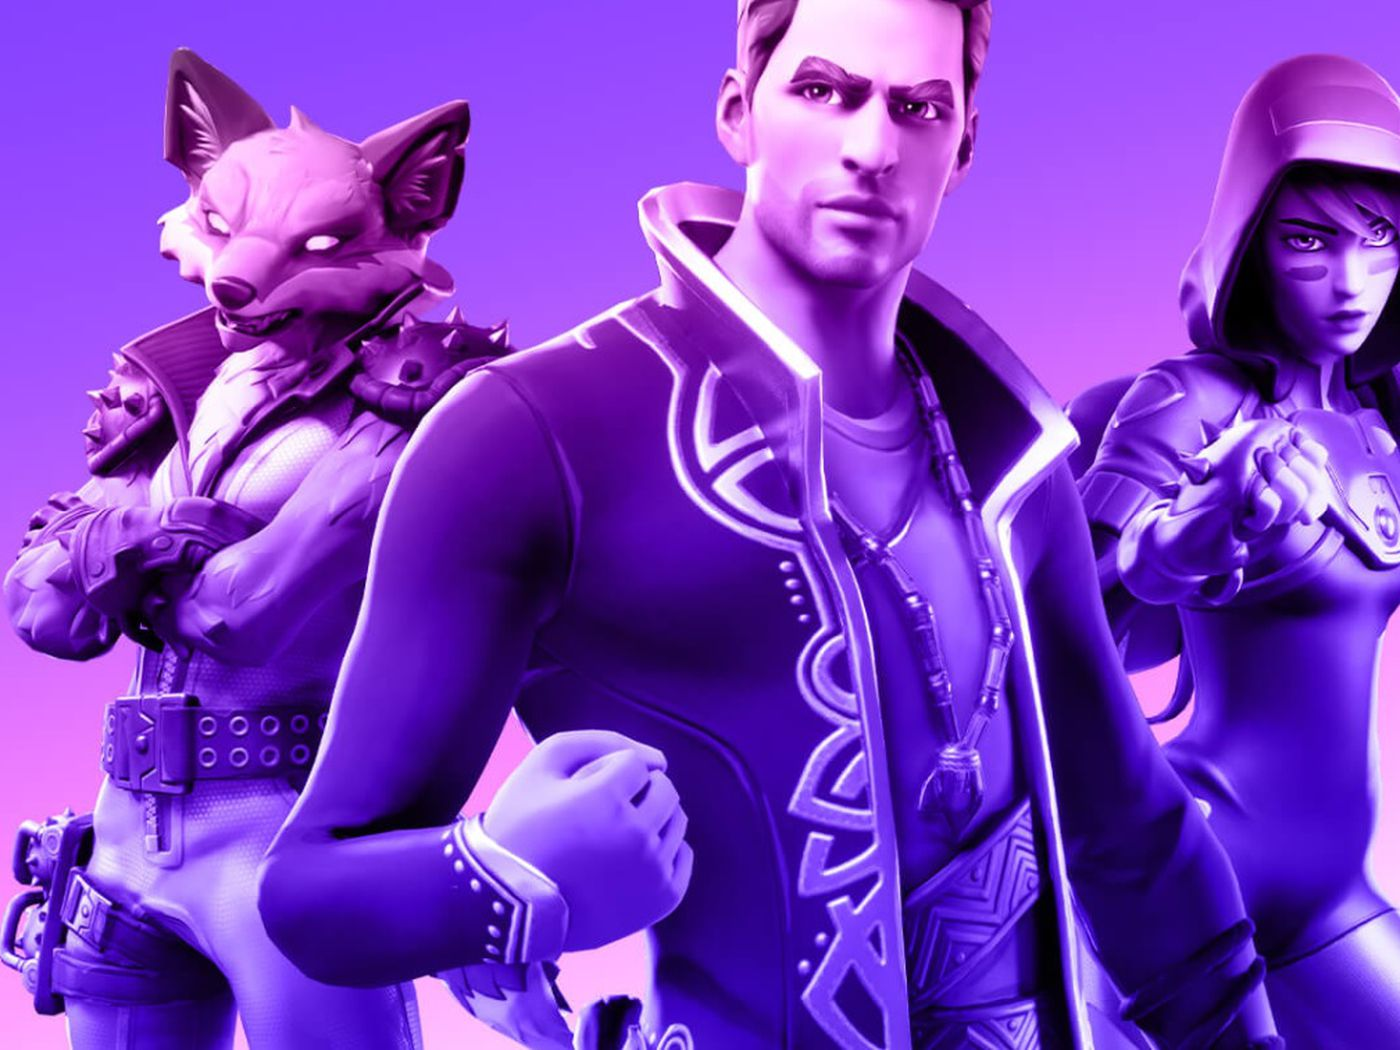 Fortnite Is Still Playable On Ios Just Not On The App Store Polygon You had to have an invite code to play fortnite battle royal on ios. fortnite is still playable on ios just